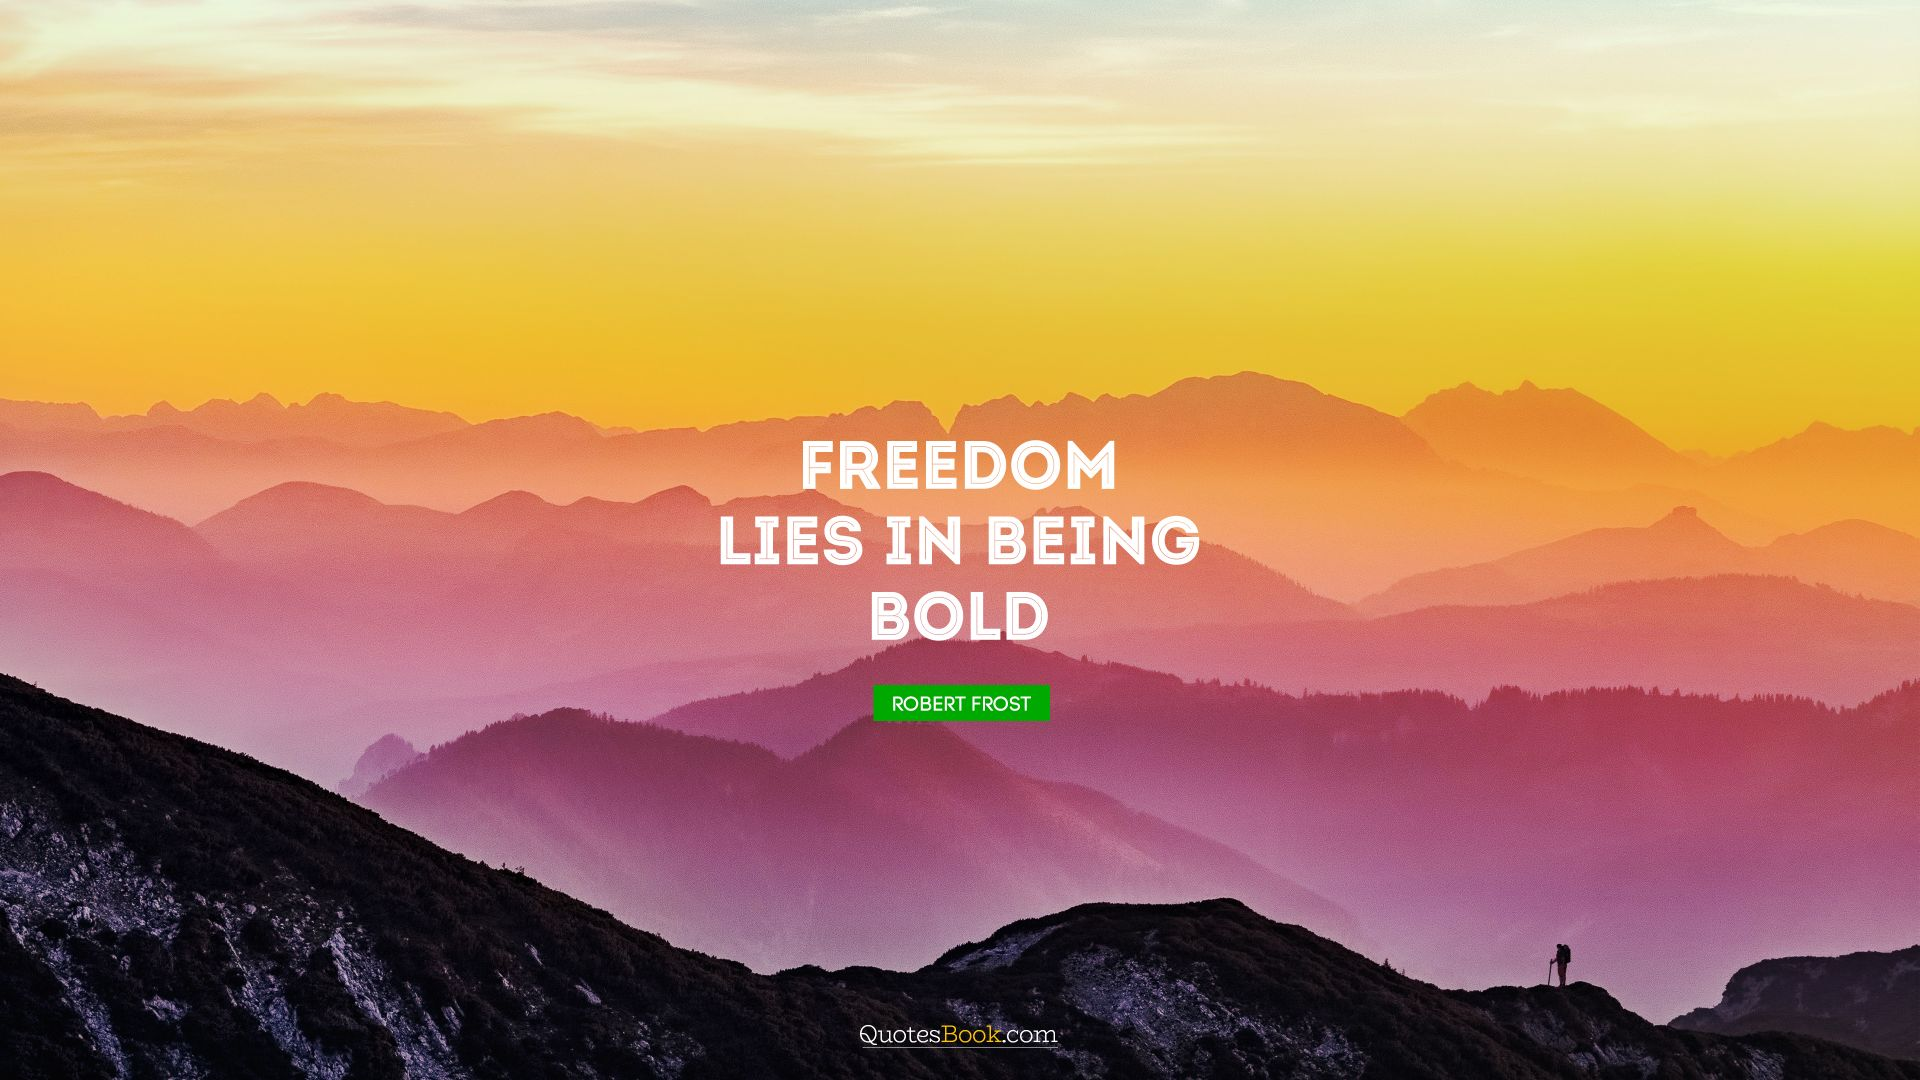 Freedom lies in being bold. - Quote by Robert Frost